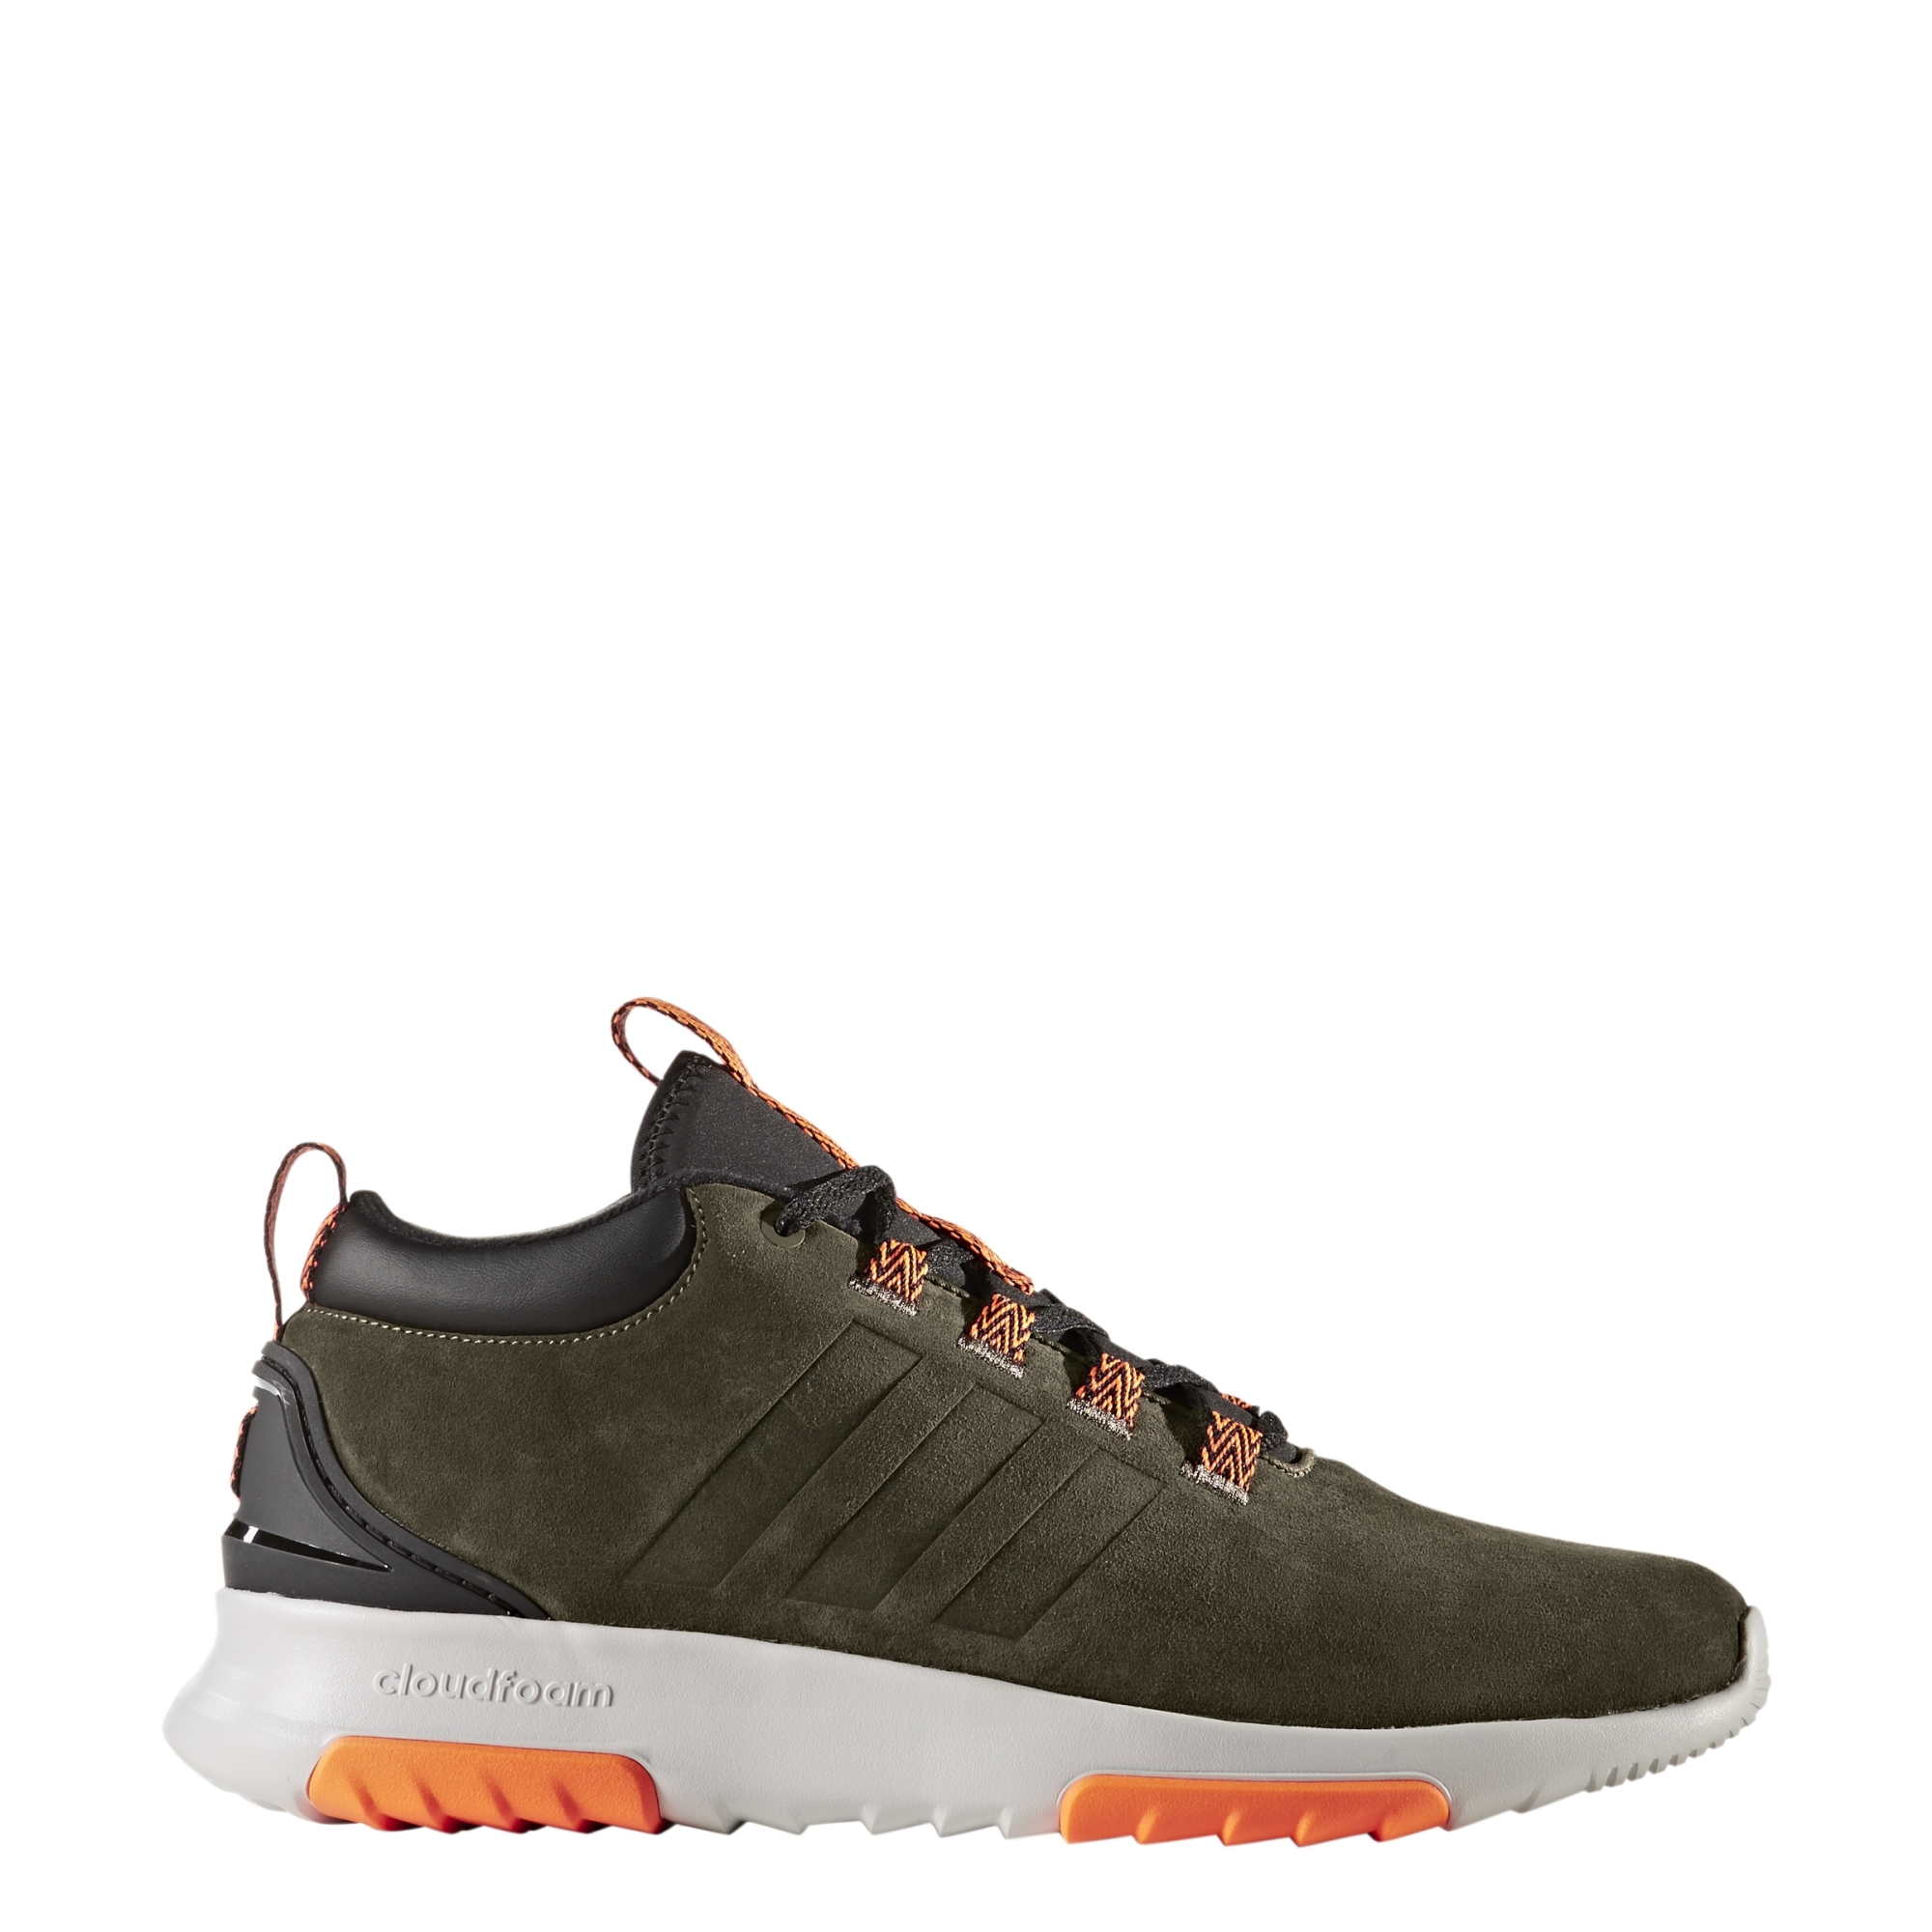 adidas CLOUDFOAM RACER WINTER MID topánky -40%